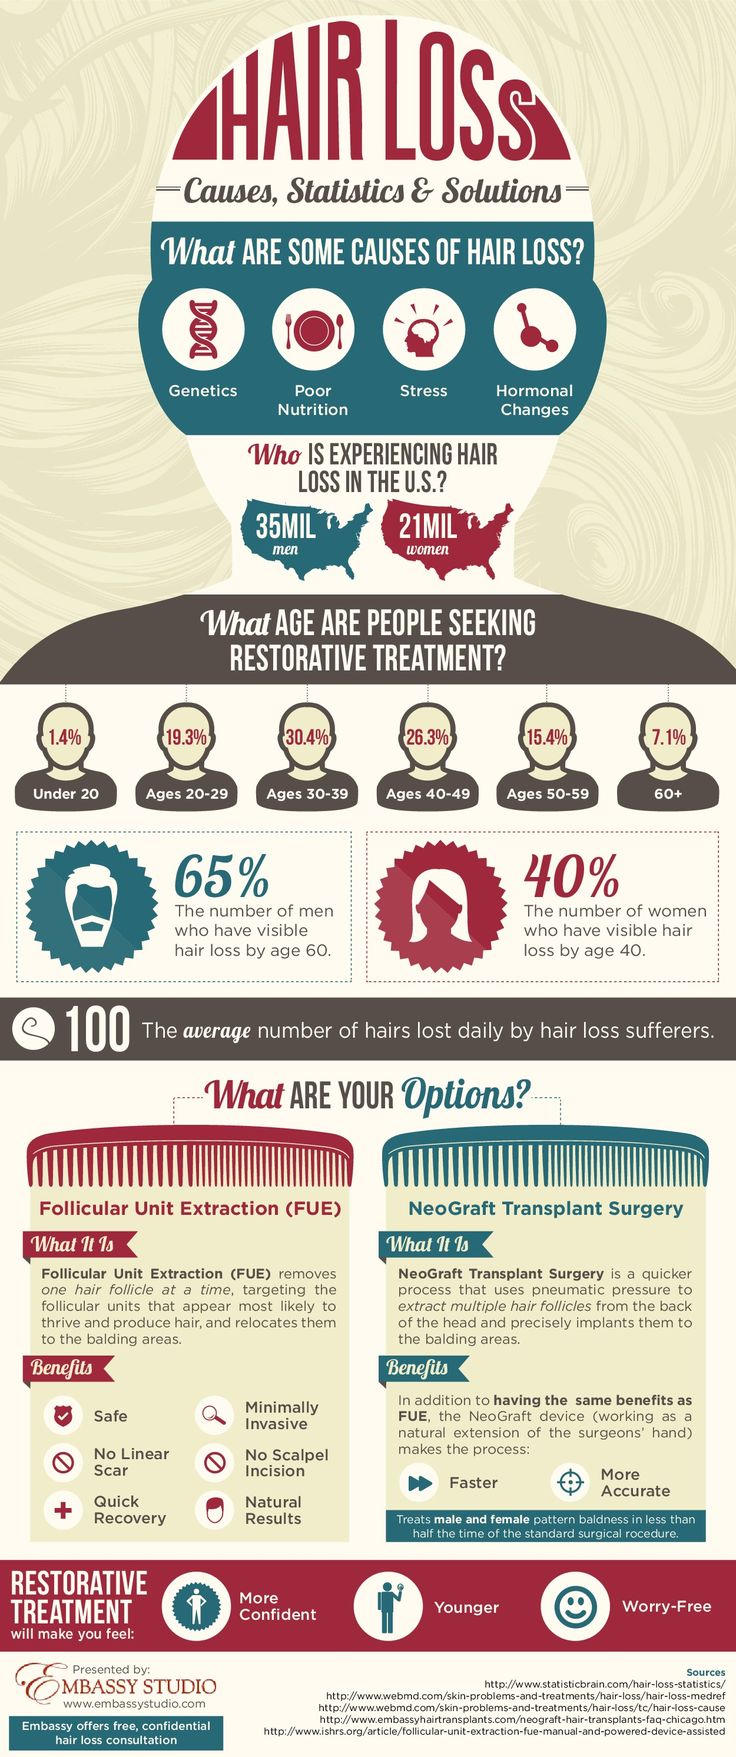 Hairloss - Causes, Statistics and Solutions